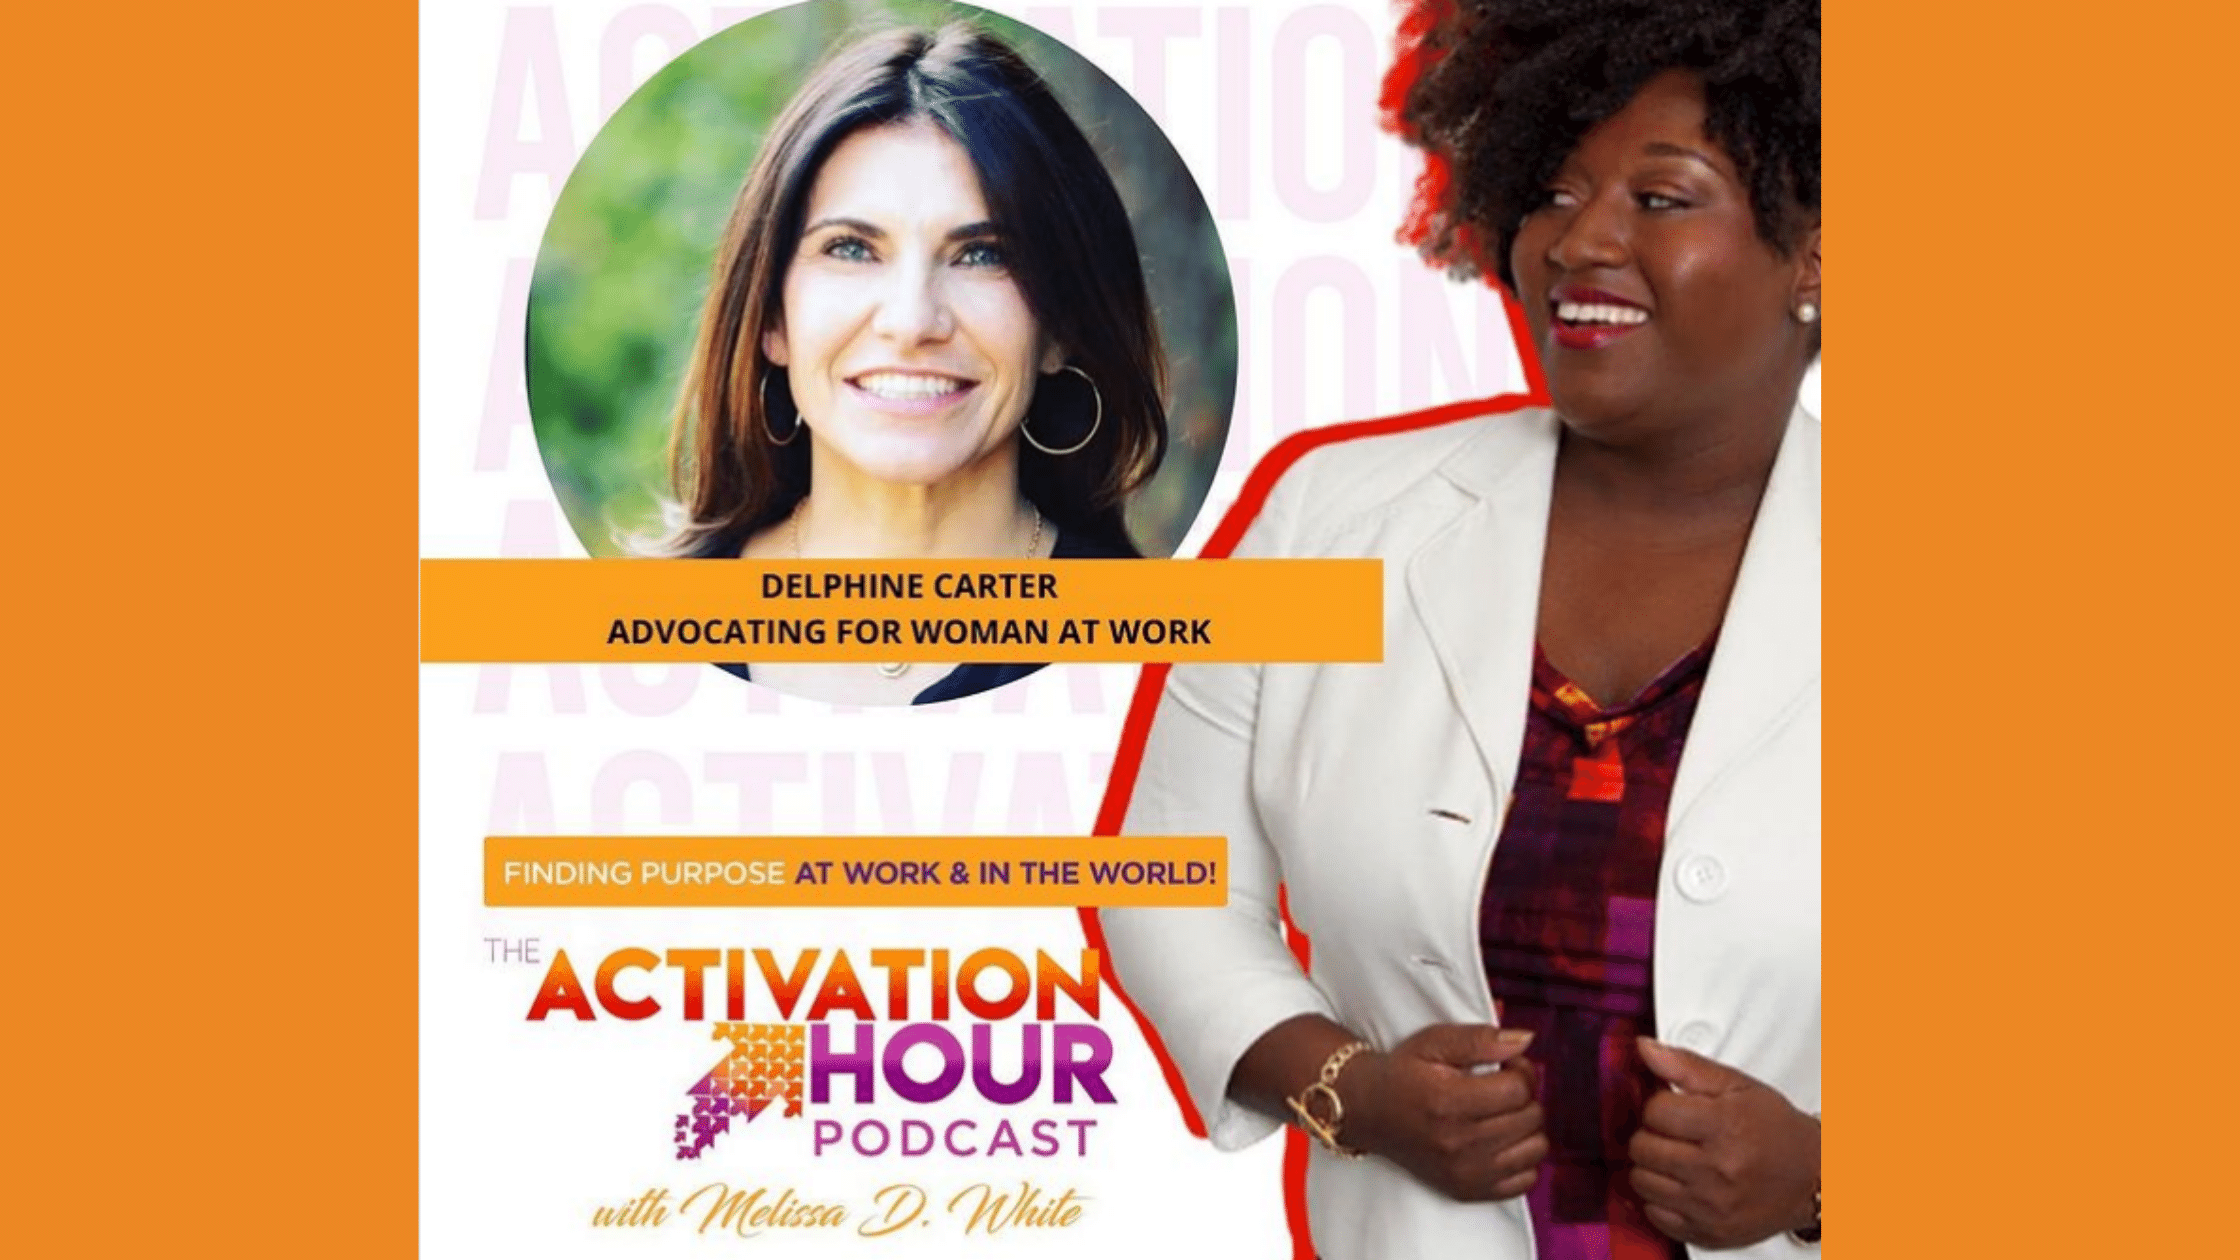 Cover Image for Melissa D. White's Activation Hour Podcast, Finding Purpose at Work and in the World. Delphine Carter is also pictured as the guest on the topic: Advocating for Women at Work.